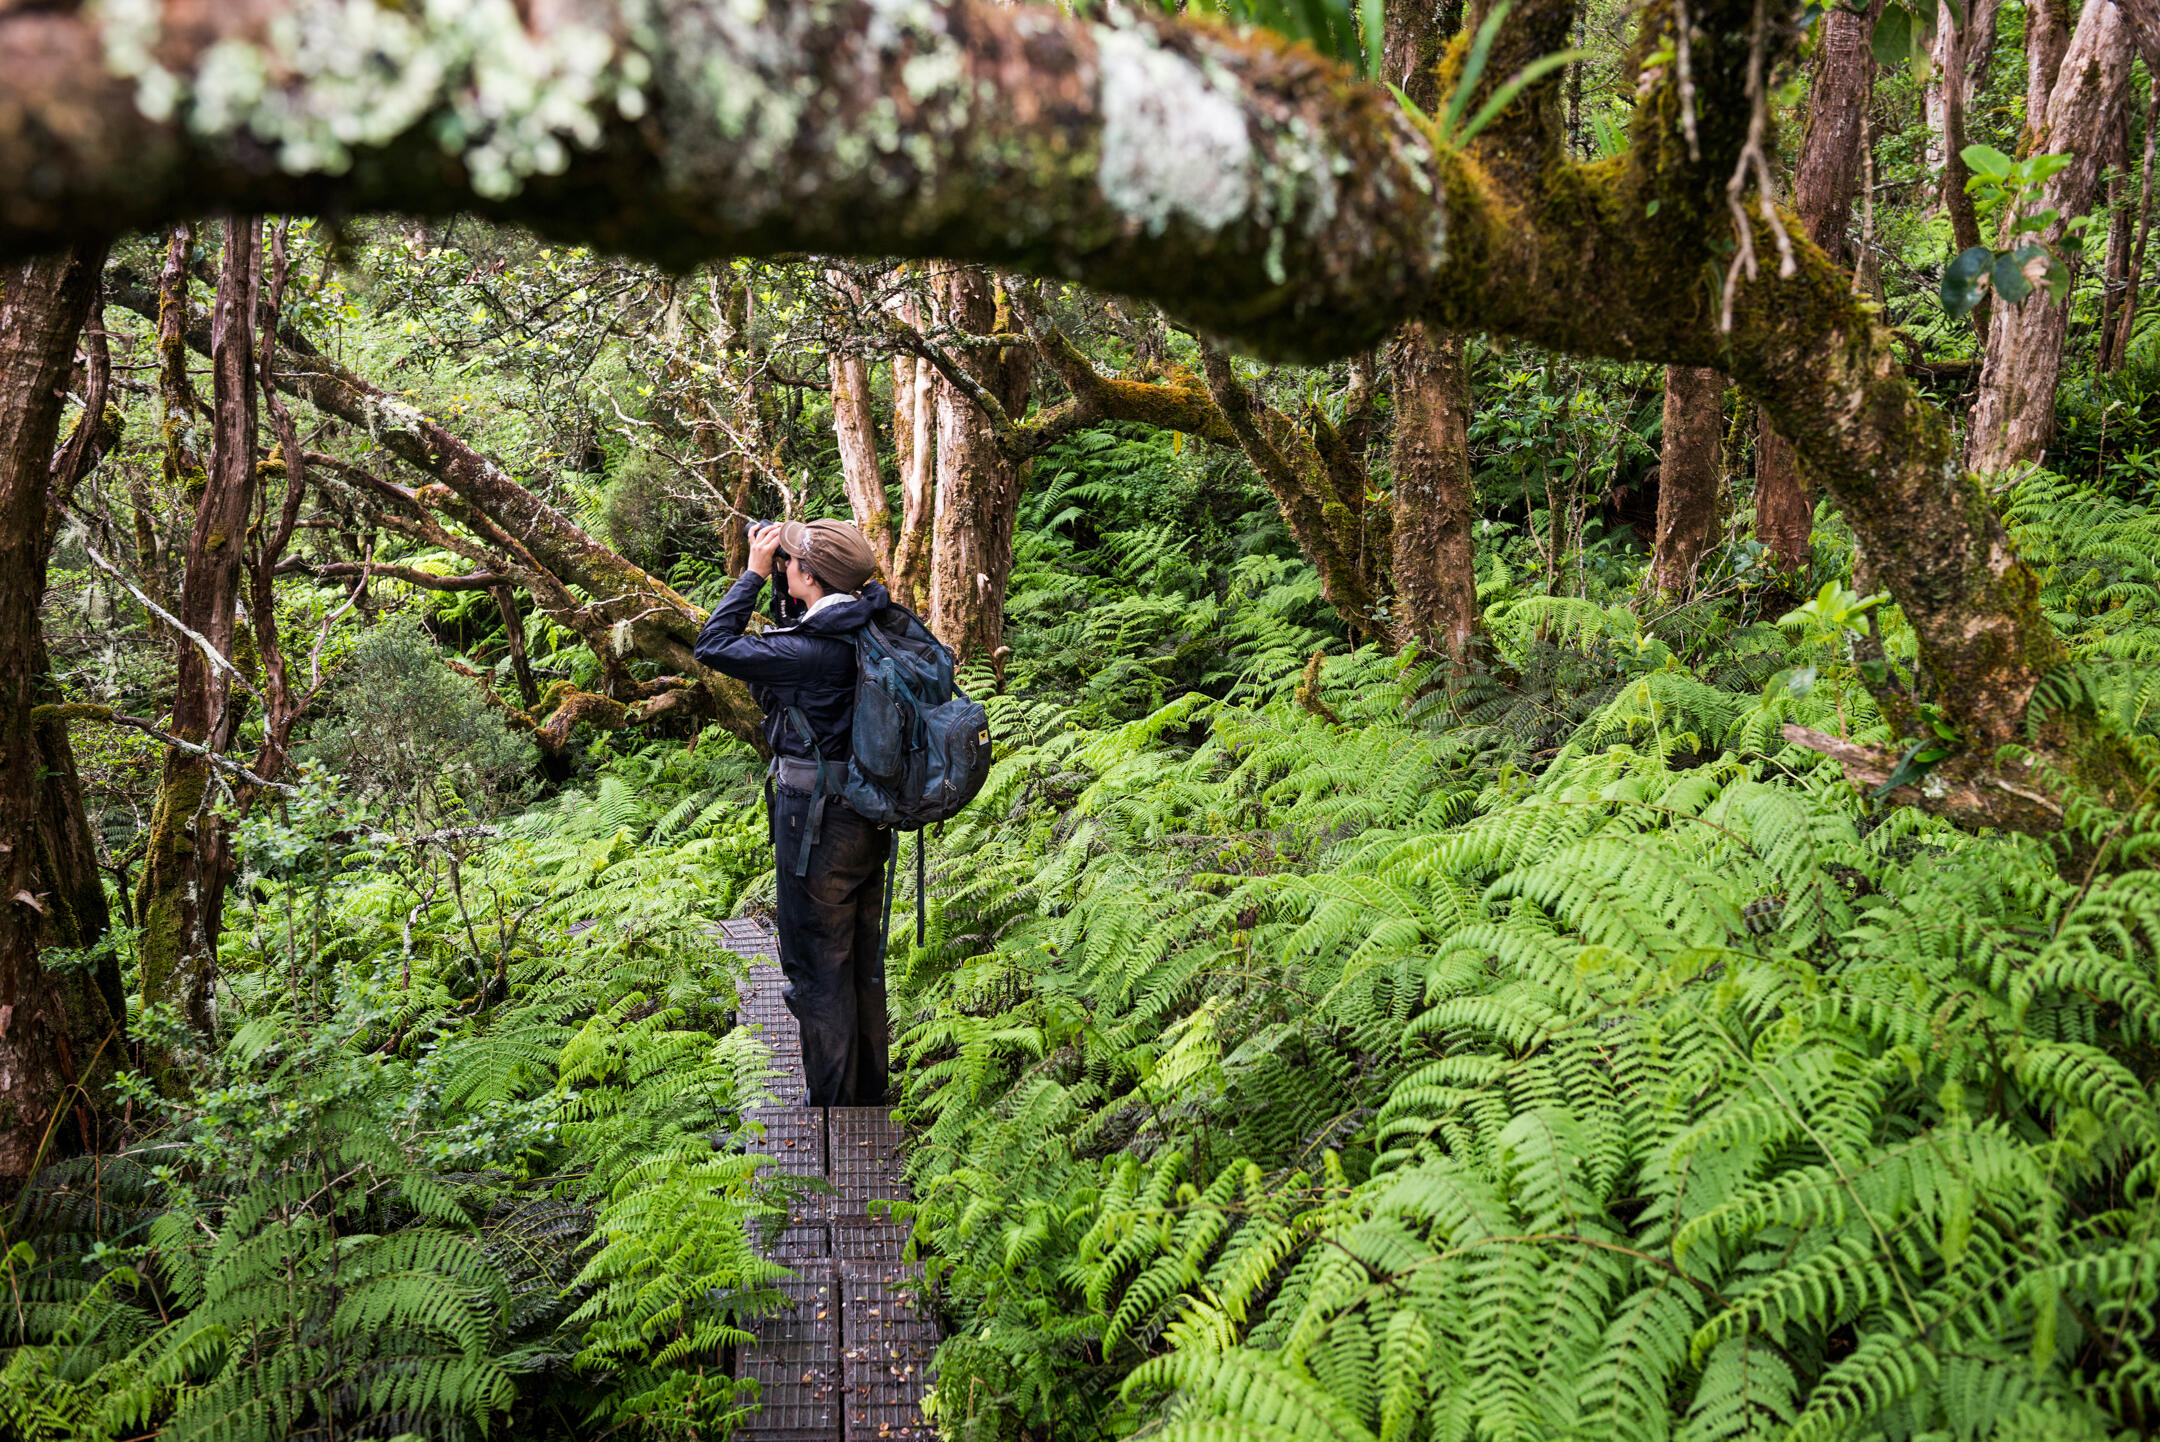 Laura Berthold hikes through Waikamoi Preserve, Parrotbill habitat. The sanctuary's 5,230 acres harbor more than three dozen rare plant species, as well as the endangered Hoary bat and about a dozen native bird species, most of them in decline. Ken Etzel